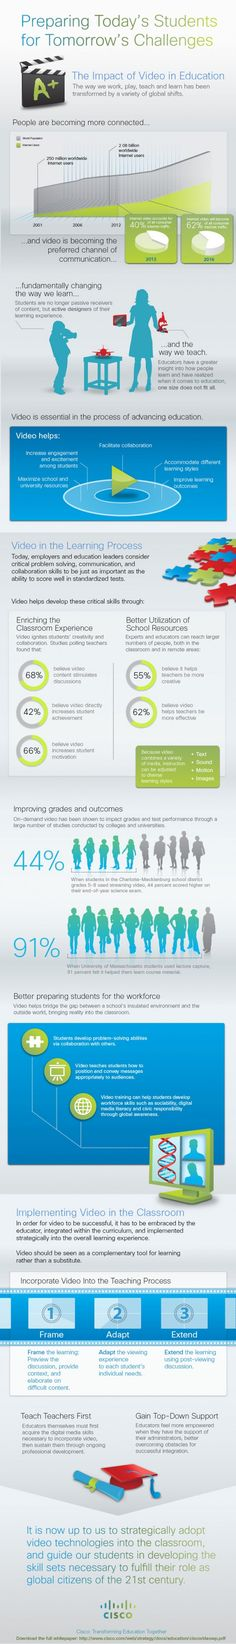 Why You Should Use Video In Education - Edudemic with infographic (20 March 2014).